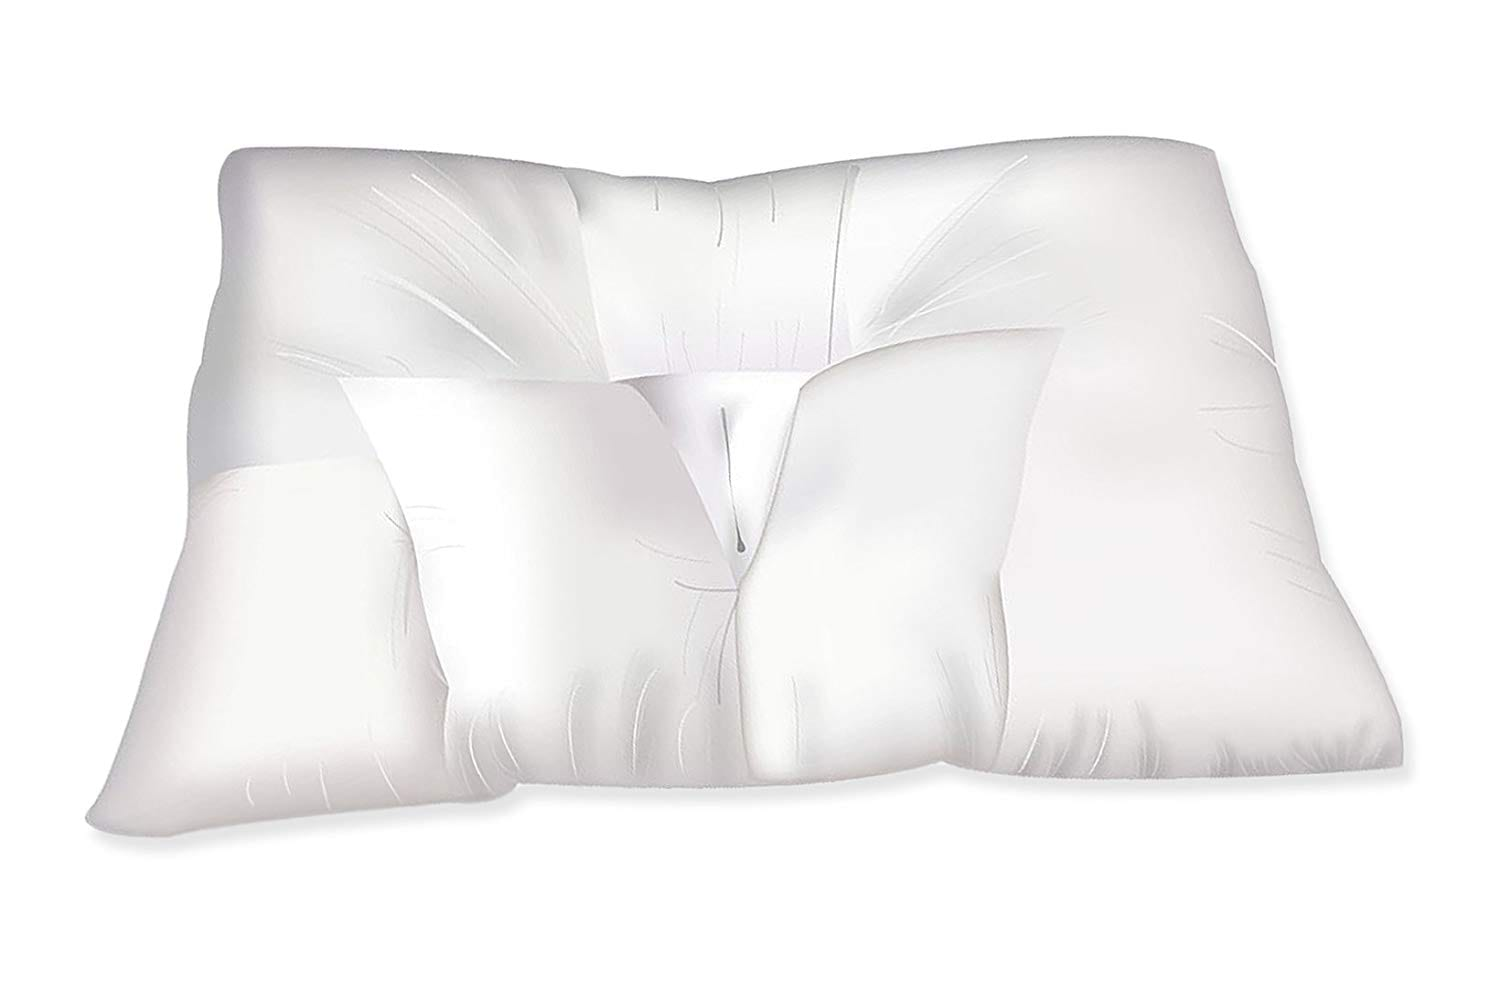 Arc4life Best Cervical Support Pillow Review by www.dailysleep.org